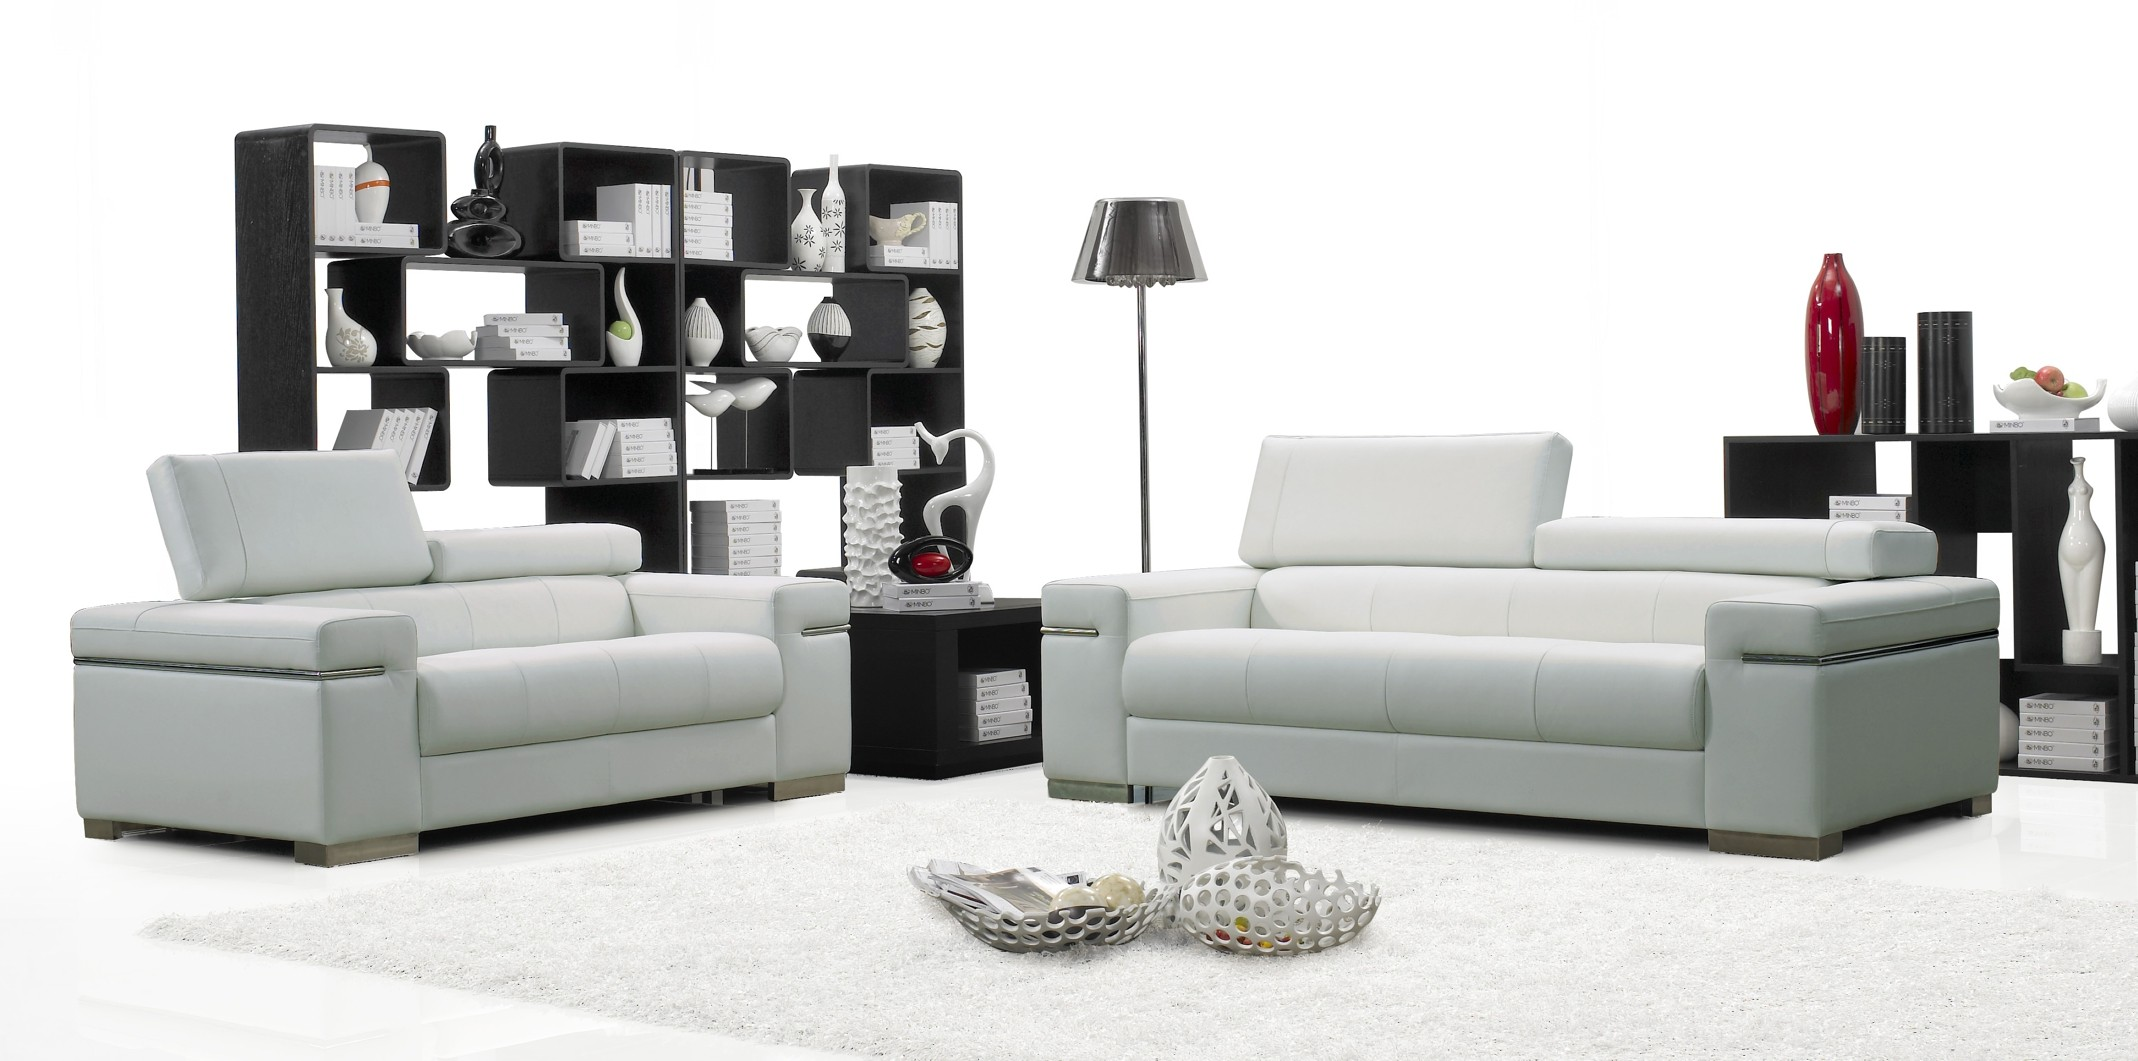 True modern furniture online homesfeed for Furniture house